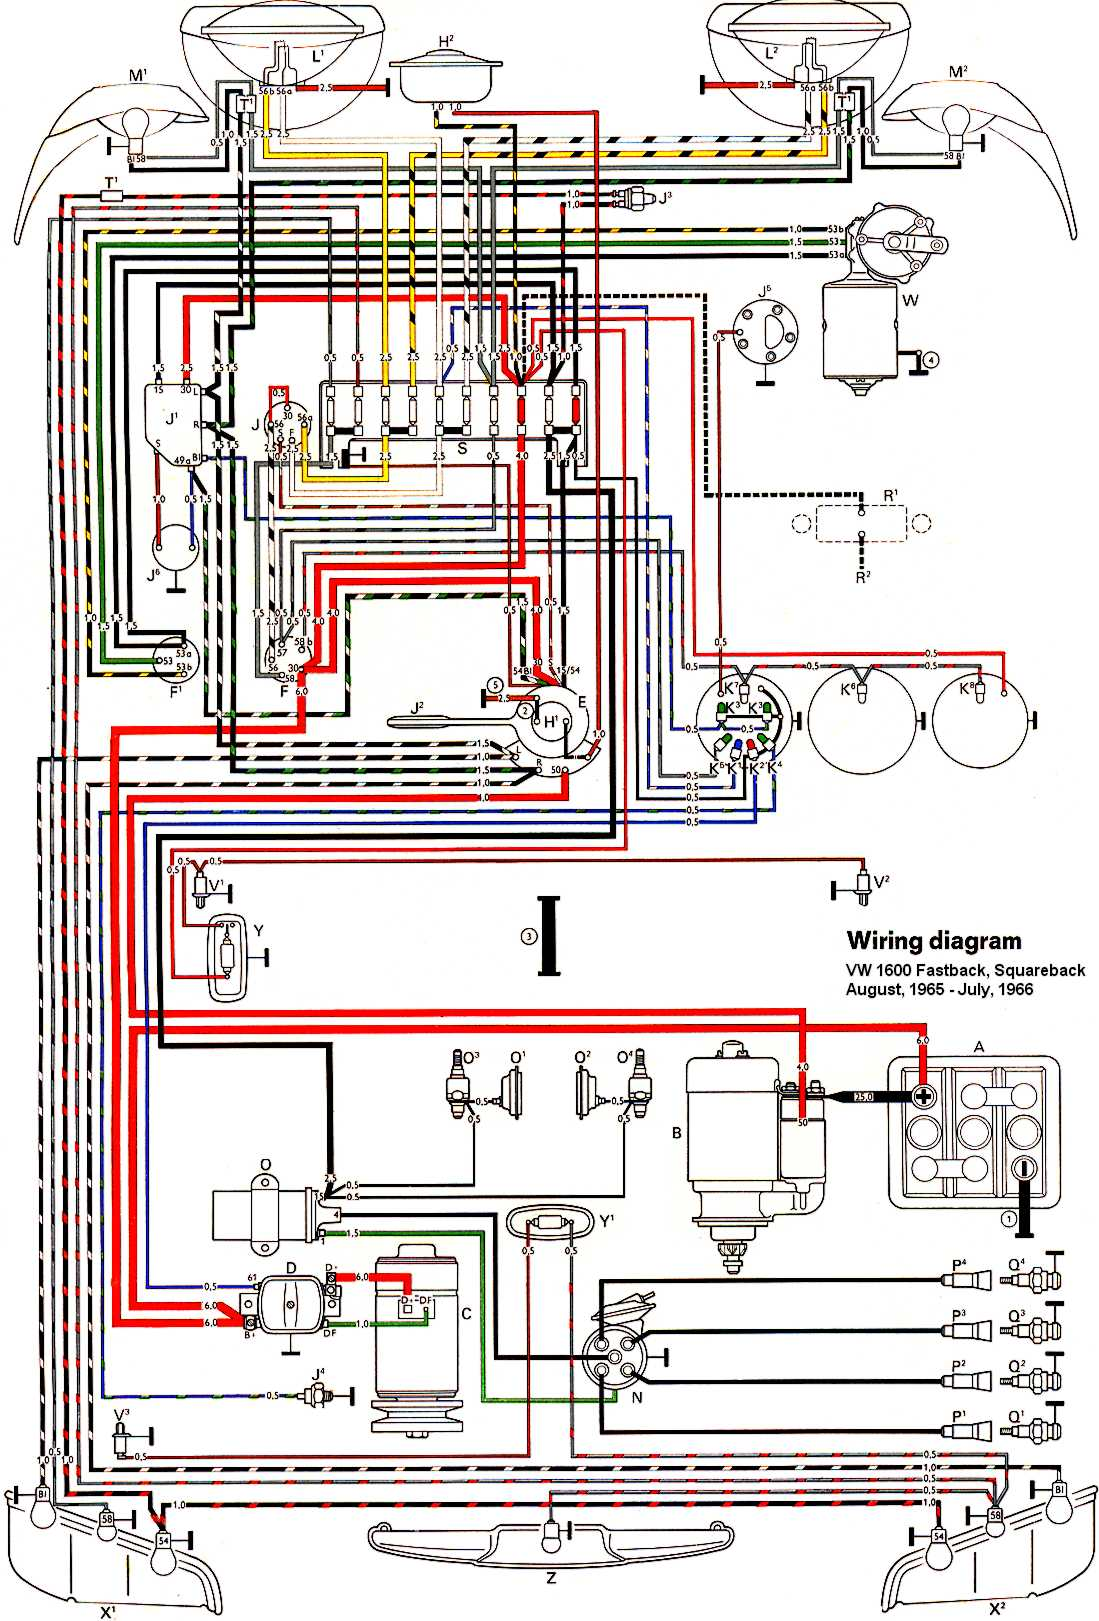 type3_1600_66 vw bus wiring diagram 1965 vw bus wiring diagram \u2022 wiring diagrams 1970 vw bug wiring diagram at pacquiaovsvargaslive.co